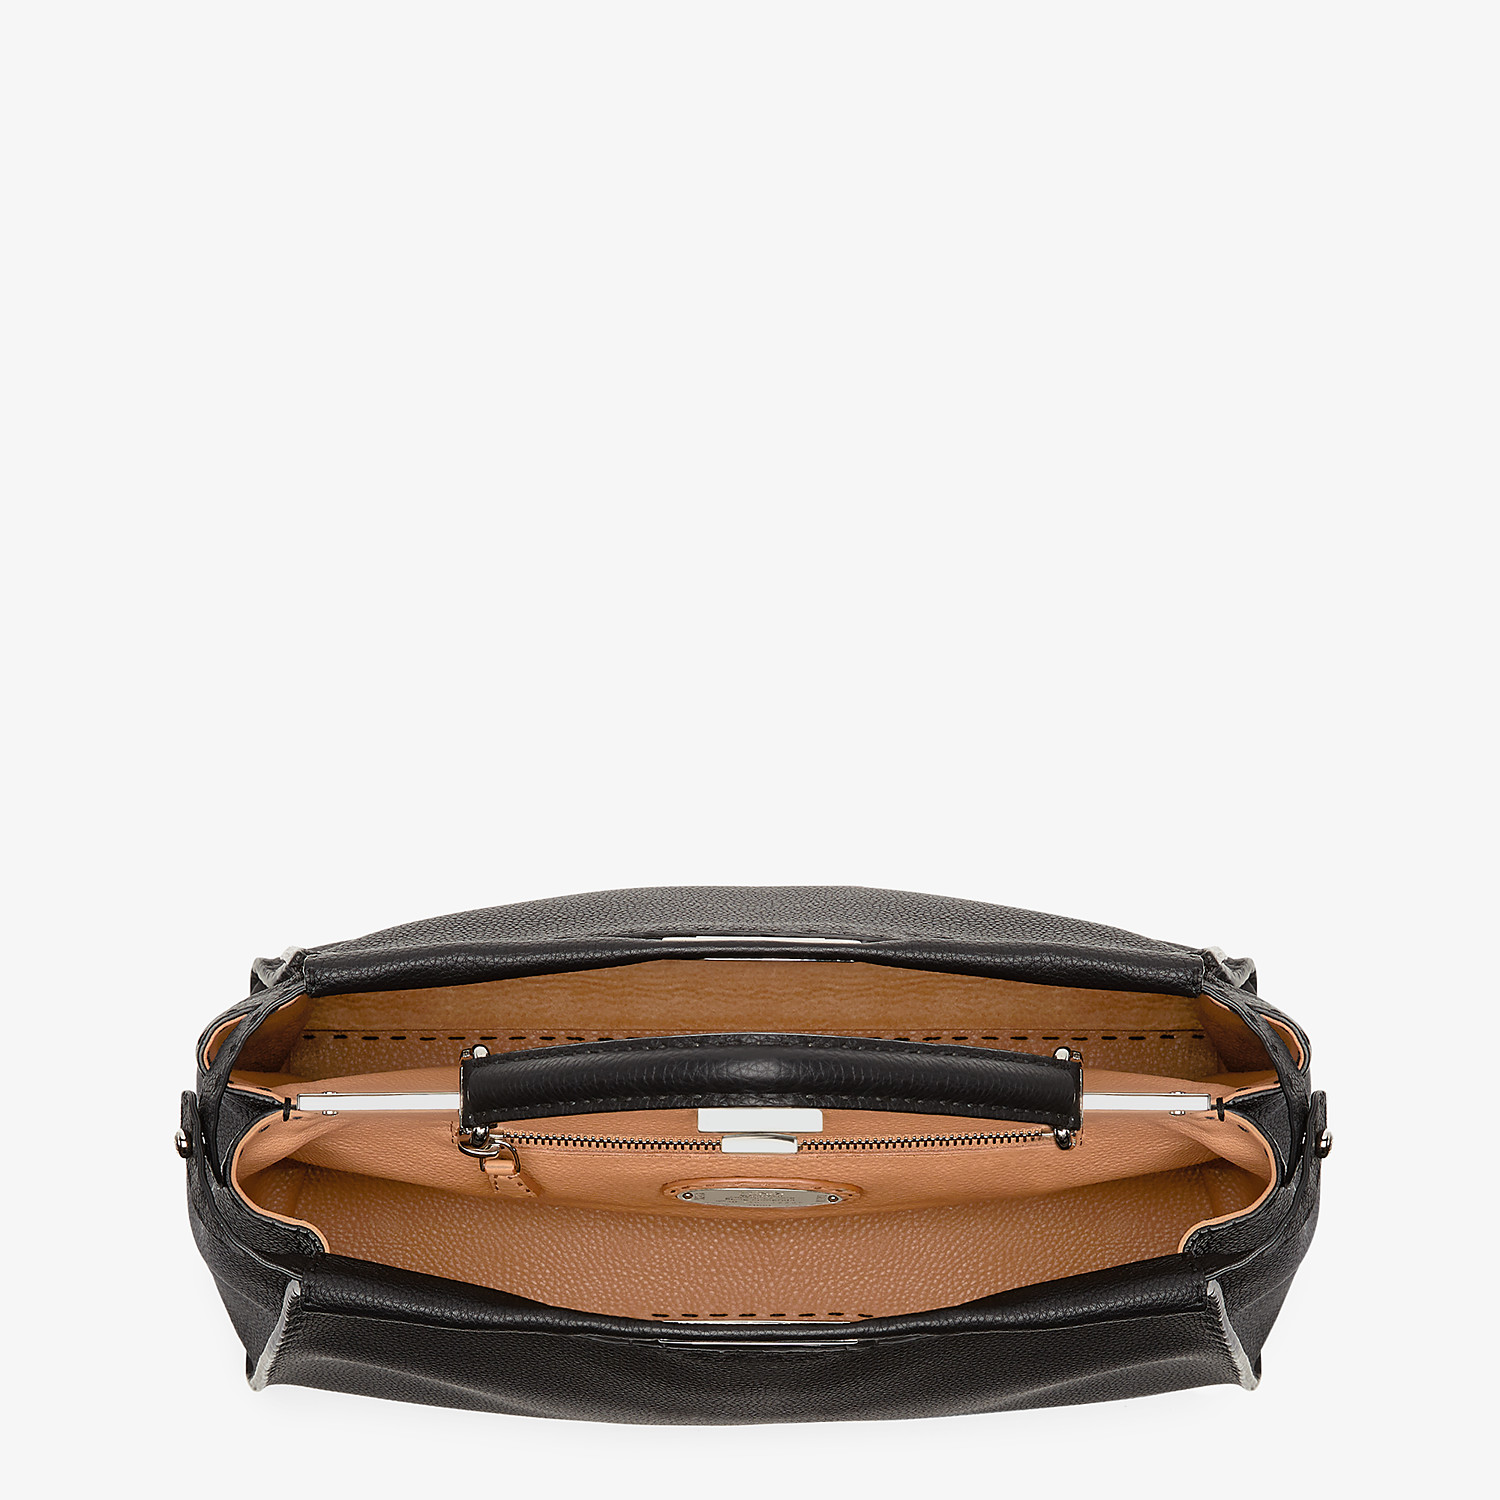 FENDI PEEKABOO ICONIC LARGE - Black leather handbag - view 5 detail